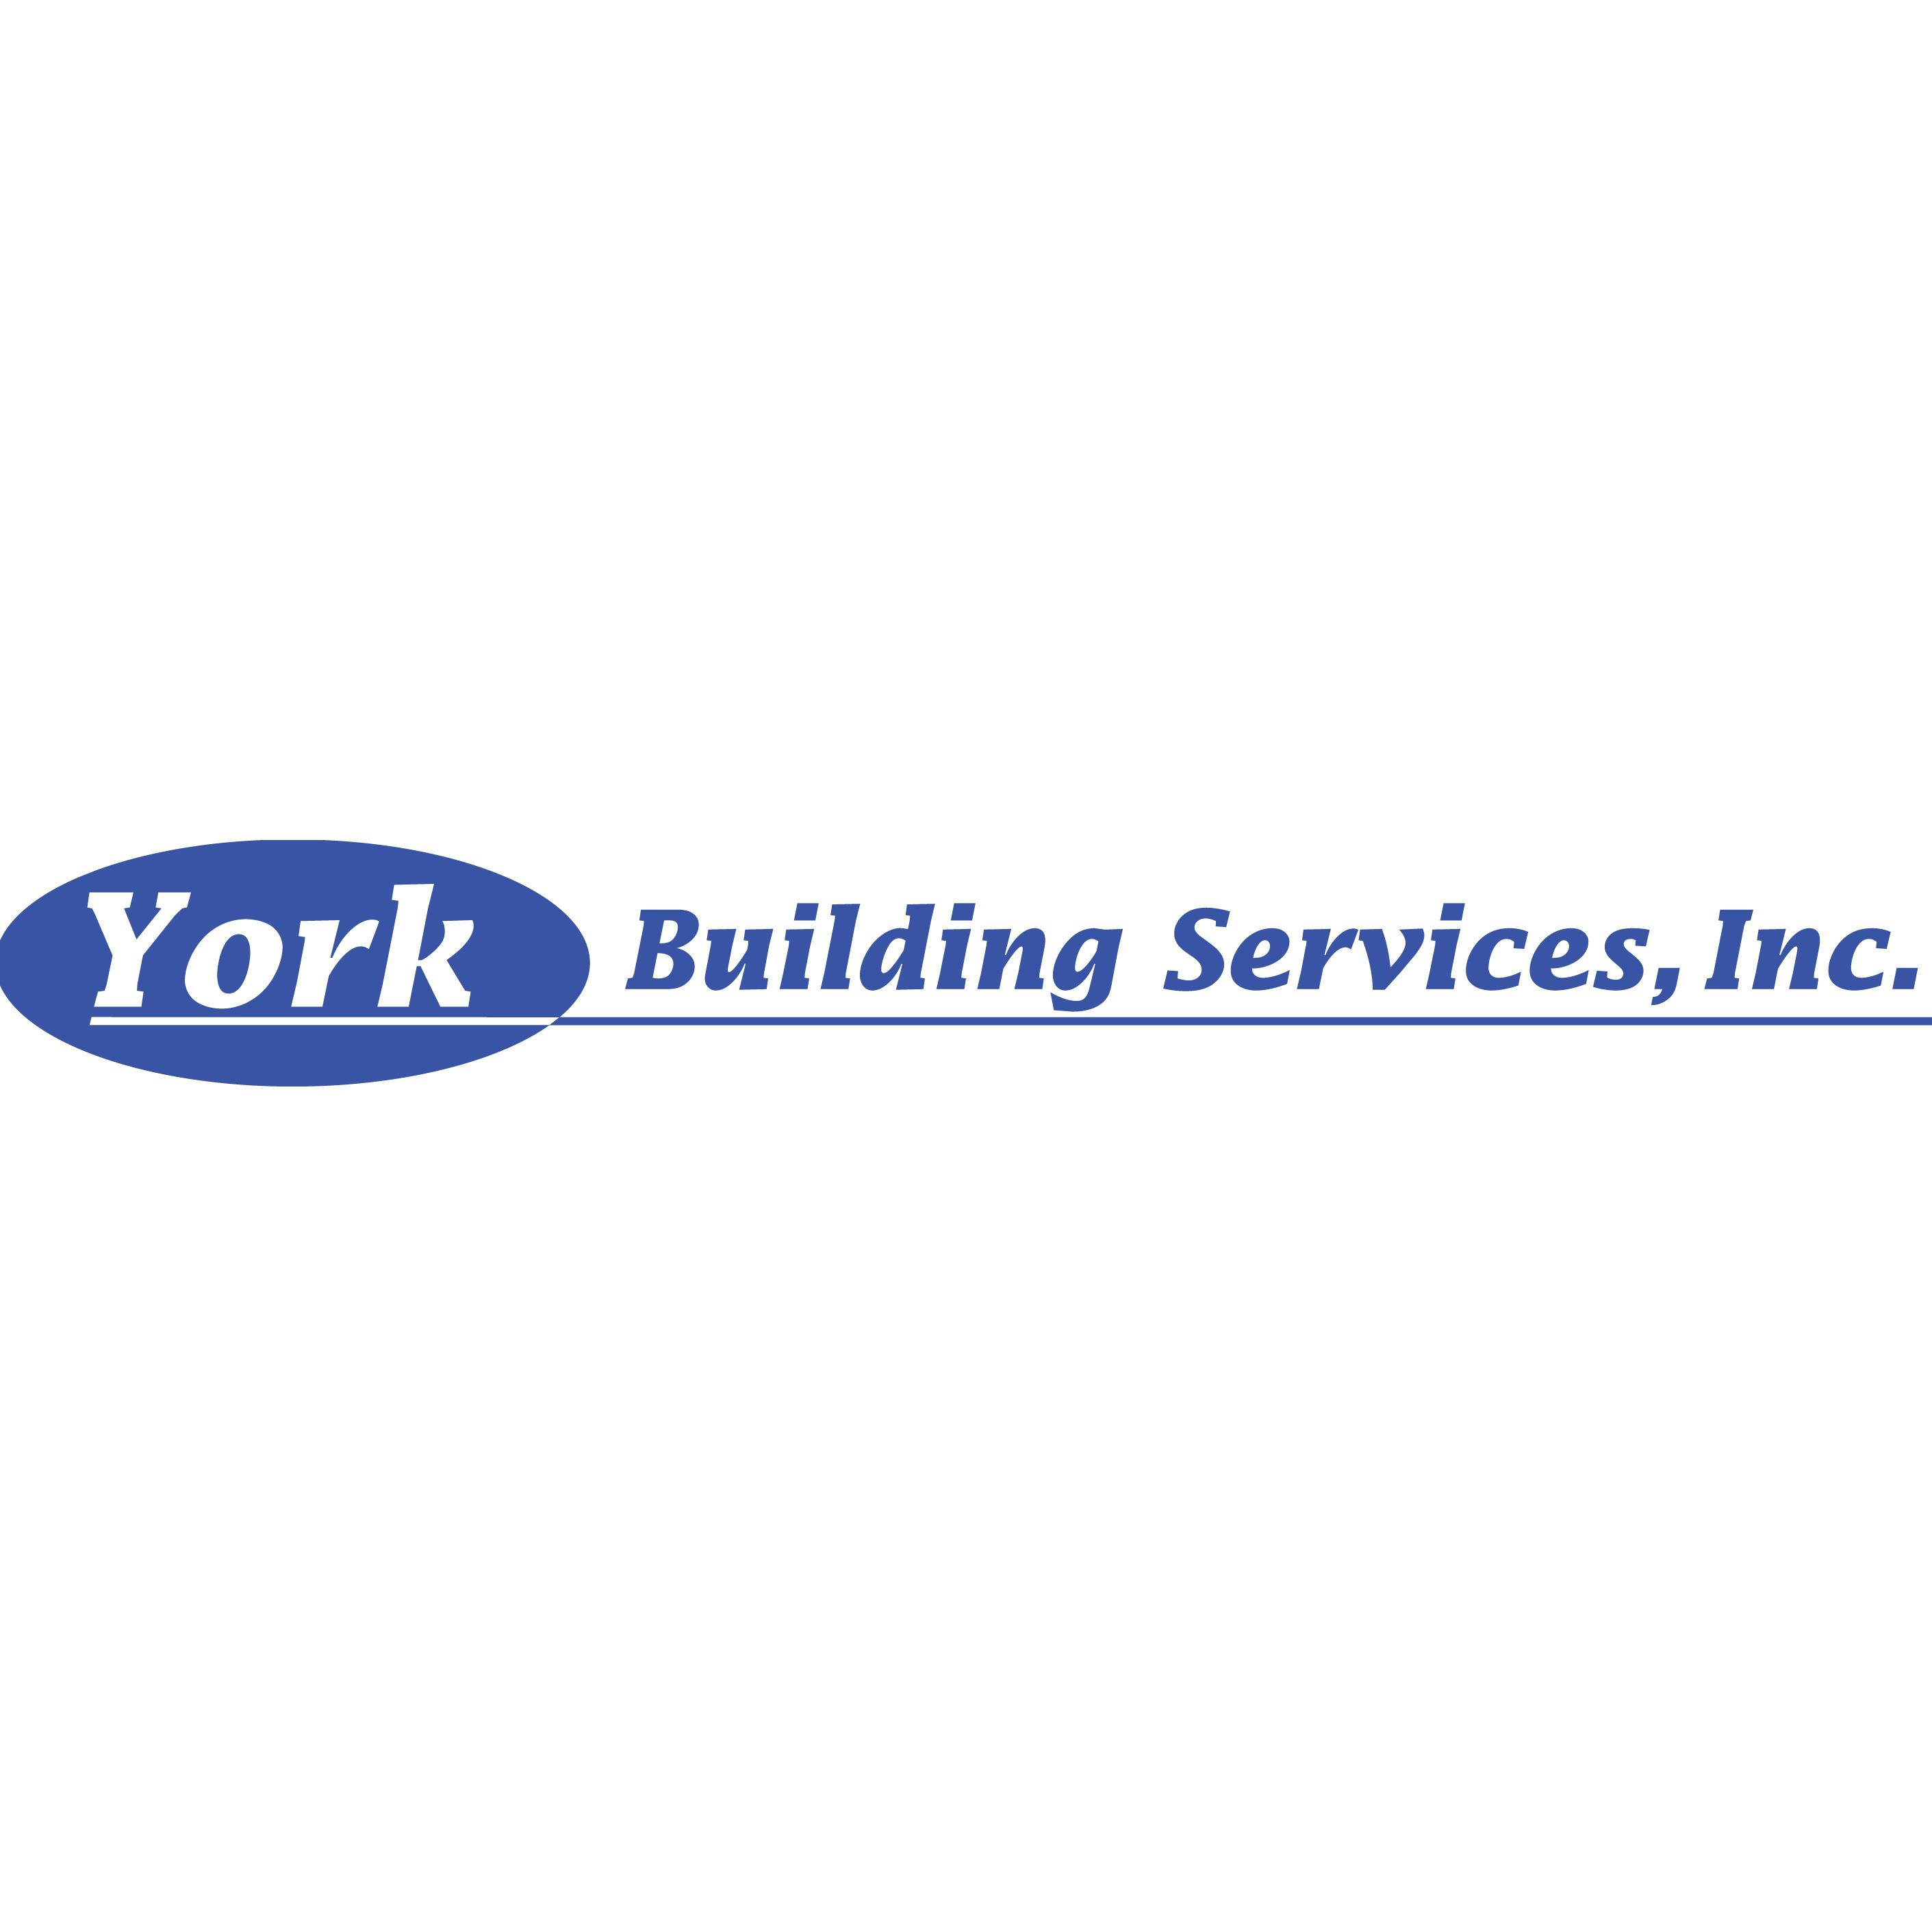 York Building Services Inc.